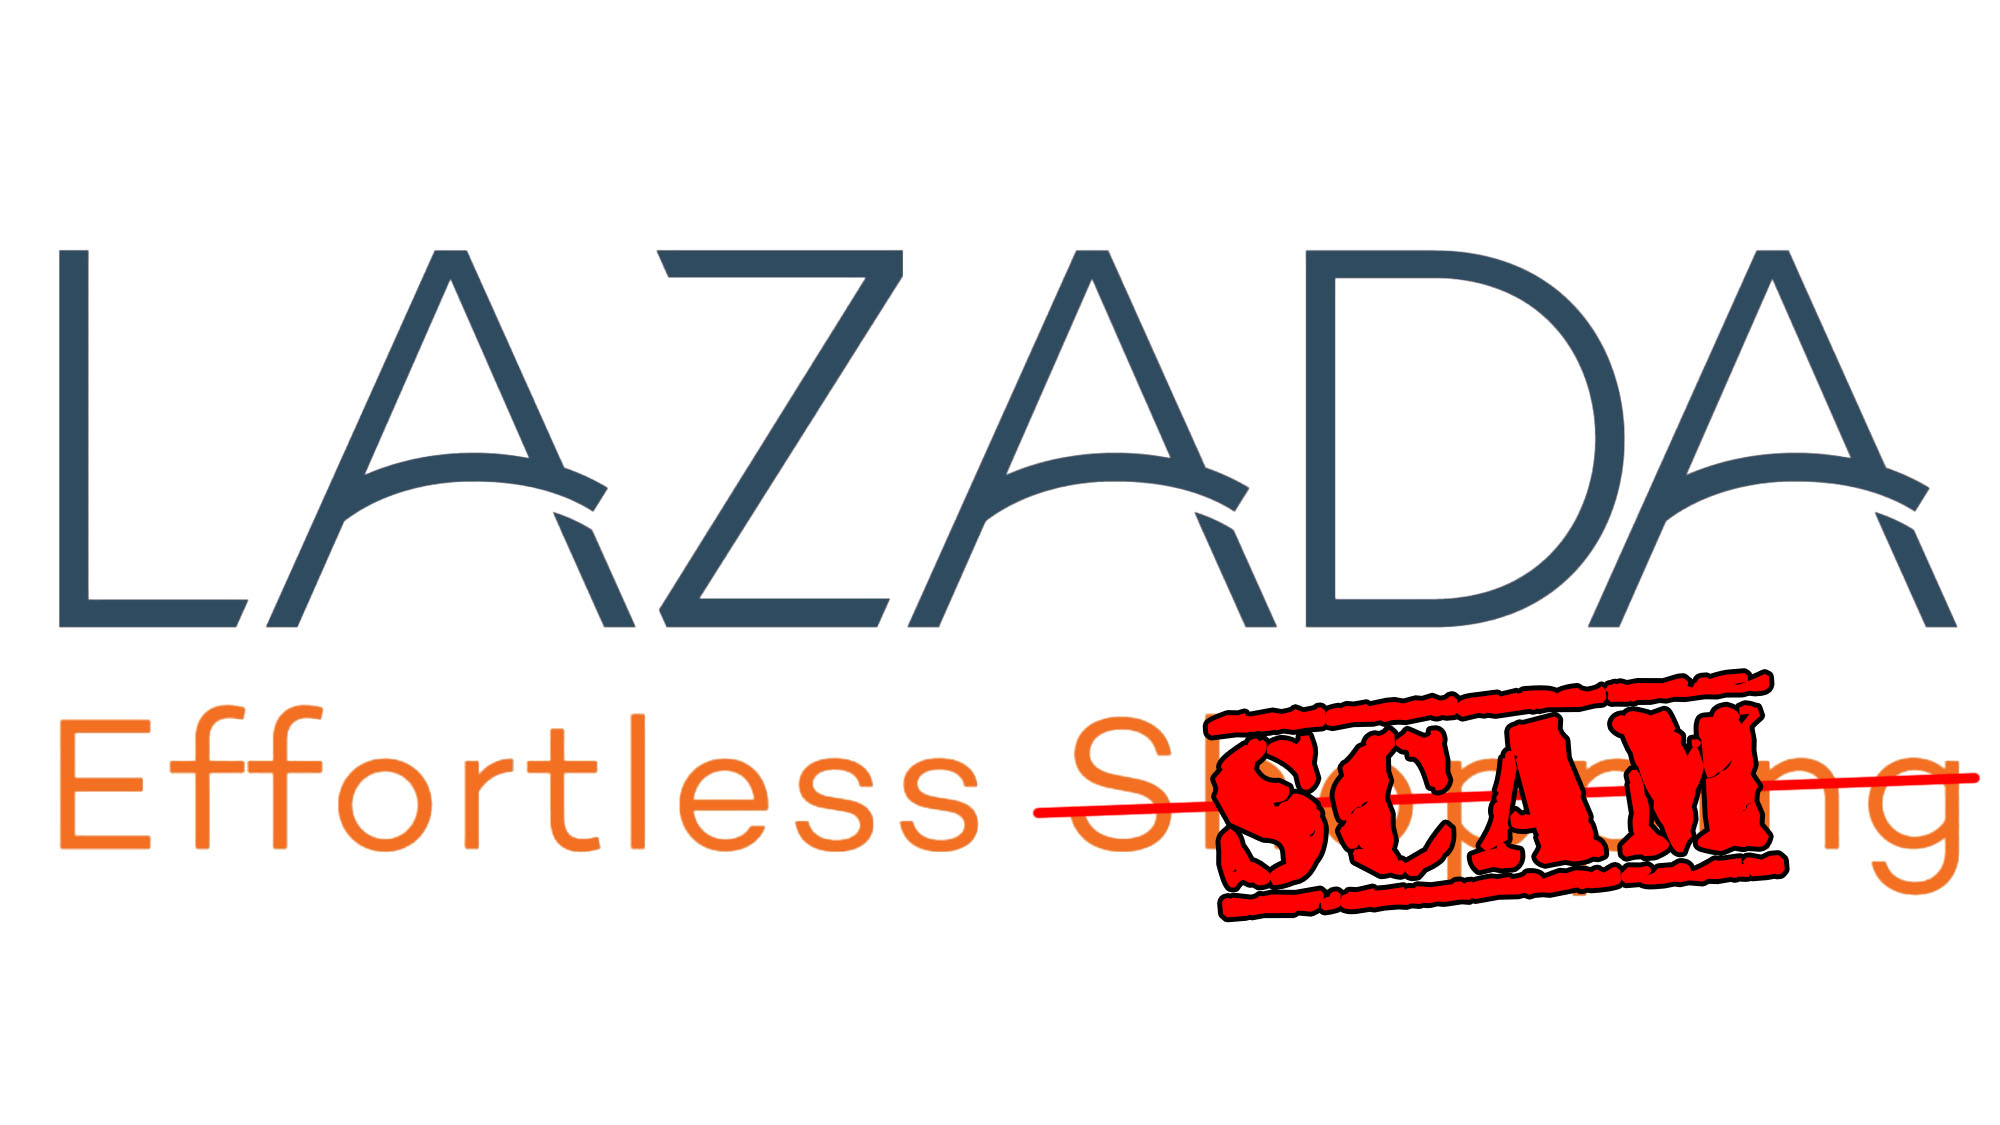 [PSA] Lazada Scam! Here's How To Avoid Them - UPDATED